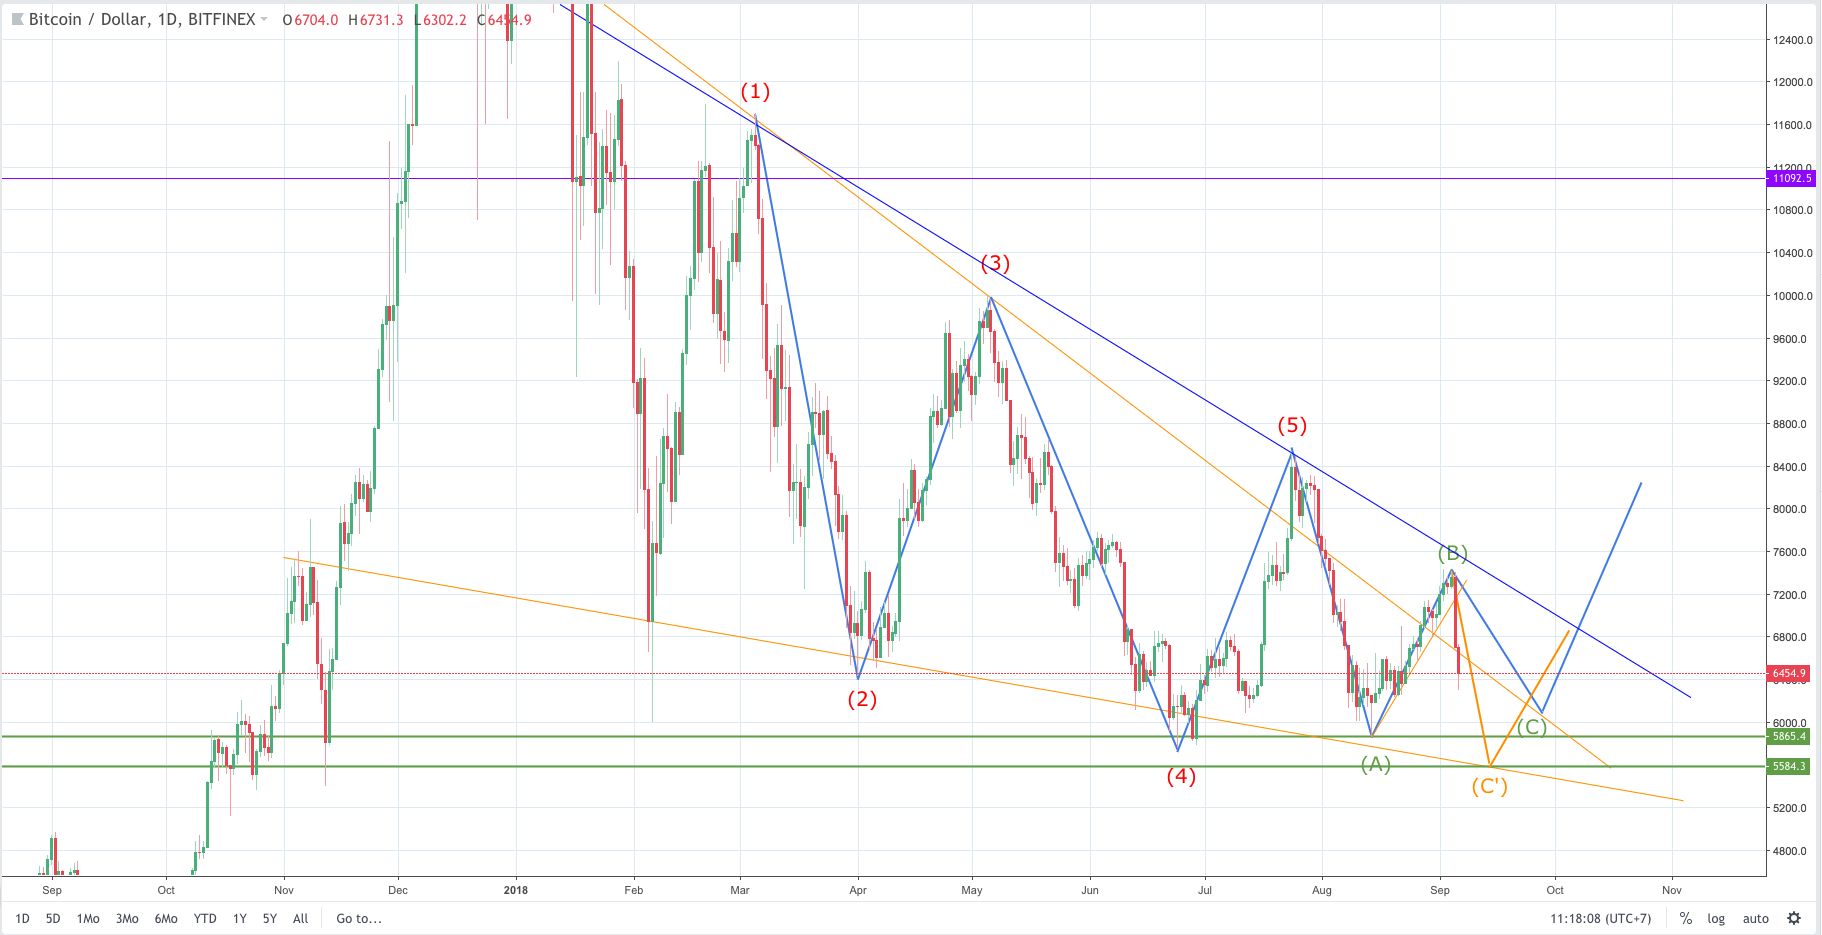 bitcoin analysis and forecast, bitcoin analysis, bitcoin forecast, btcusd